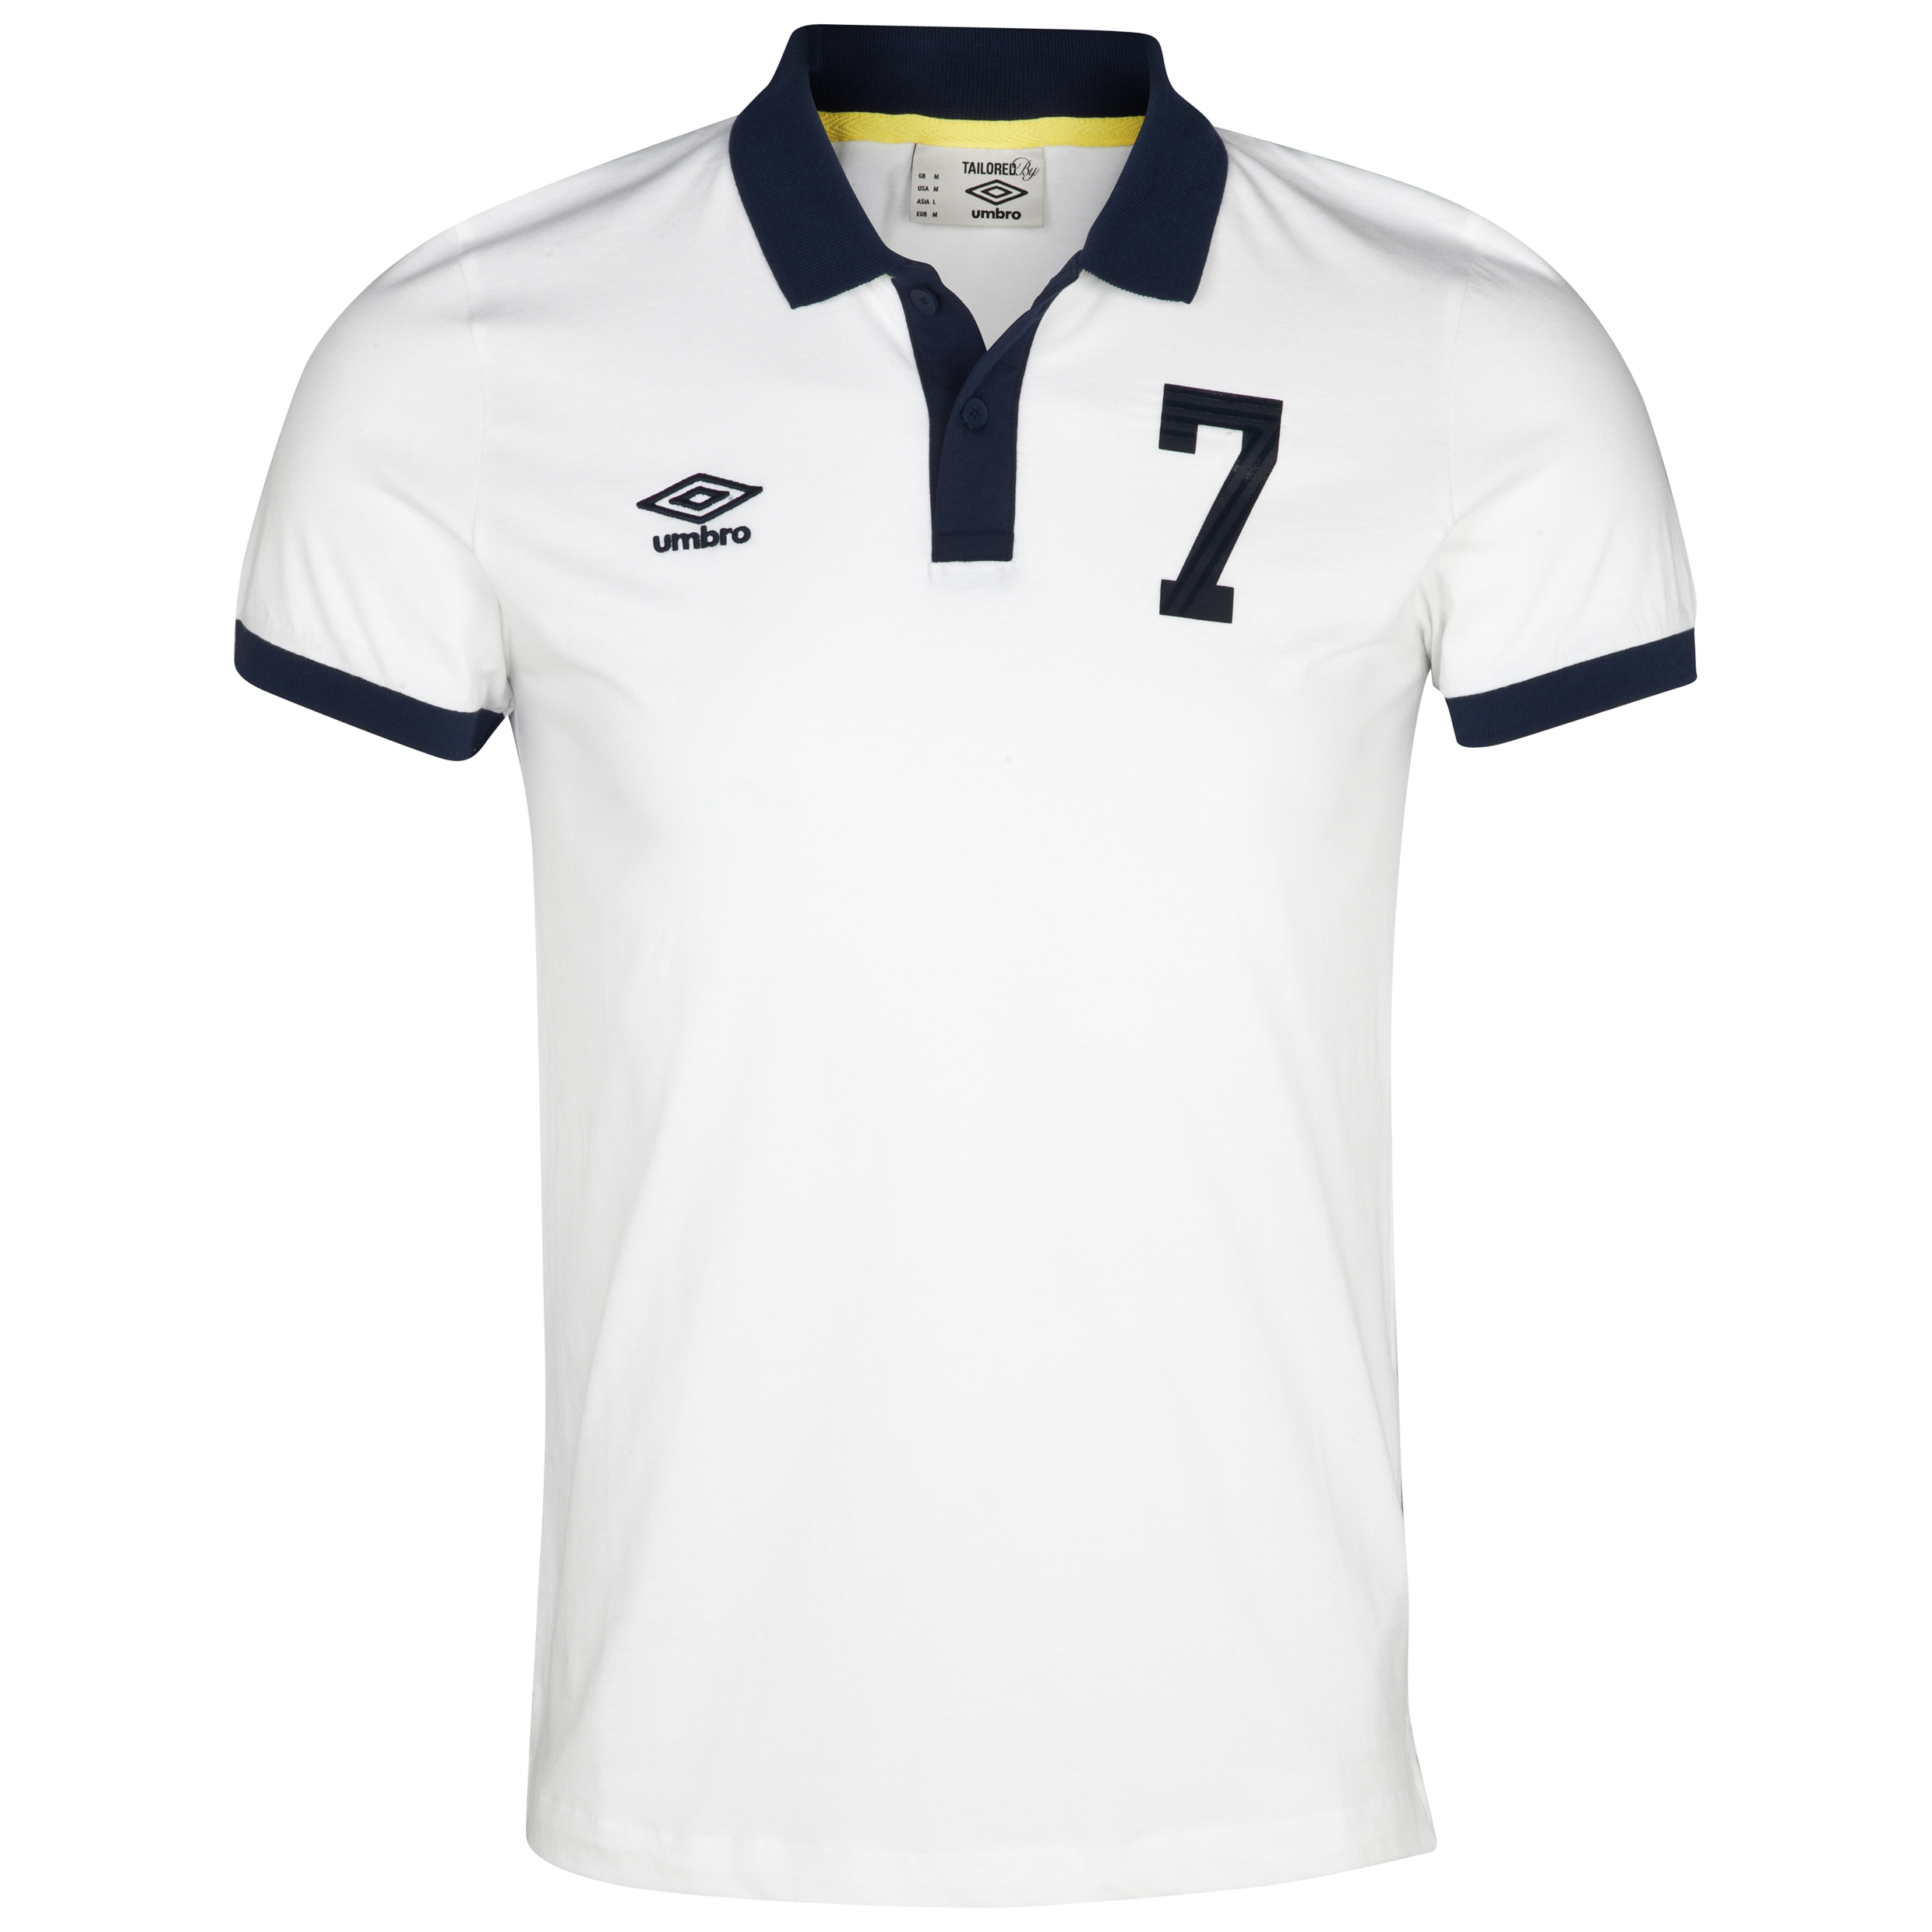 Umbro Heritage Polo - White/Dark Navy